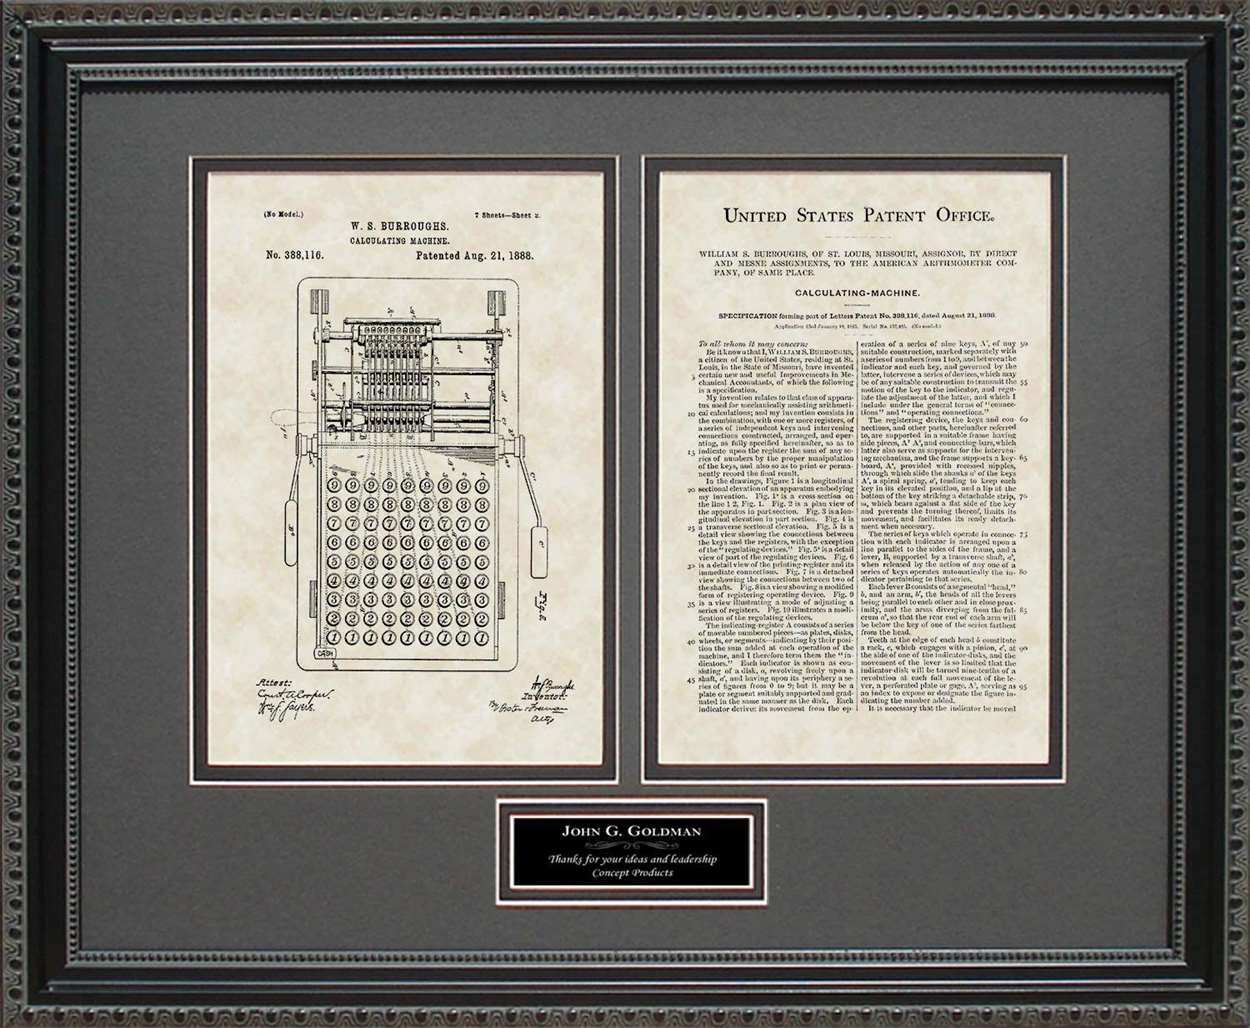 Personalized Calculator Patent, Art & Copy, Burroughs, 1888